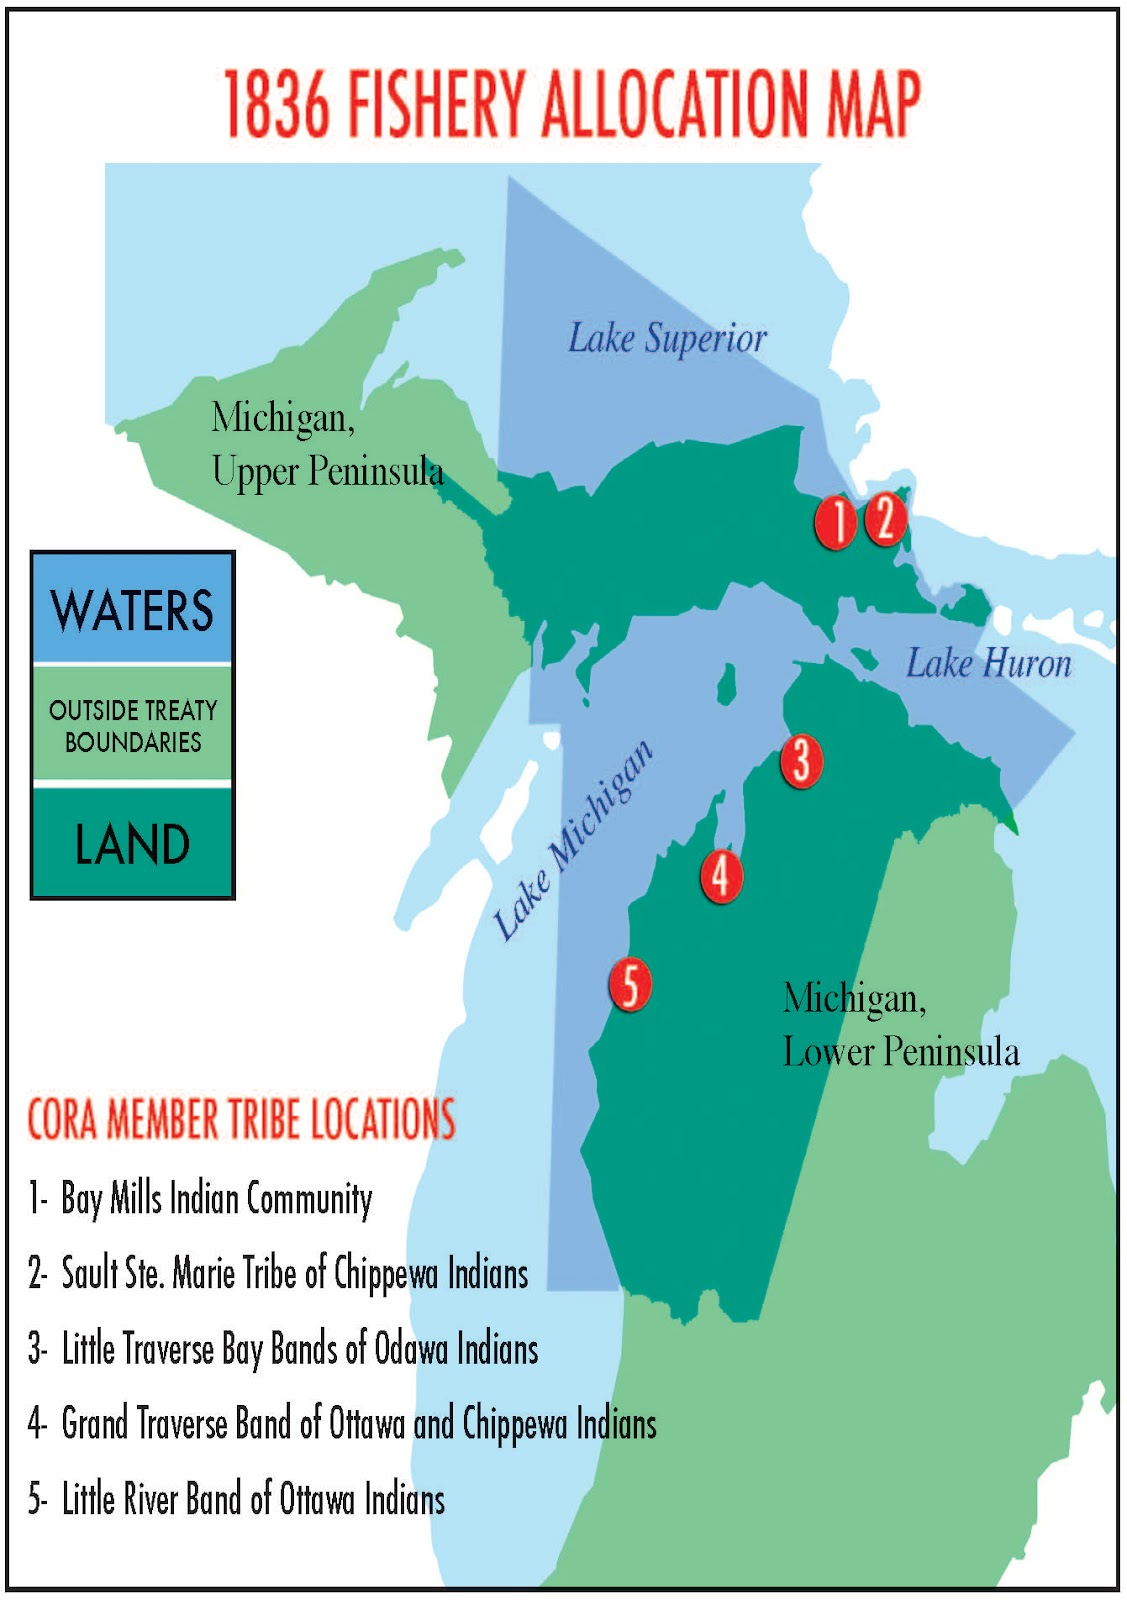 Pictured Tribal Treaty Waters And Locations Of Cora Tribes Courtesy Of The Chippewa Ottawa Resource Authority And Used With Their Permission